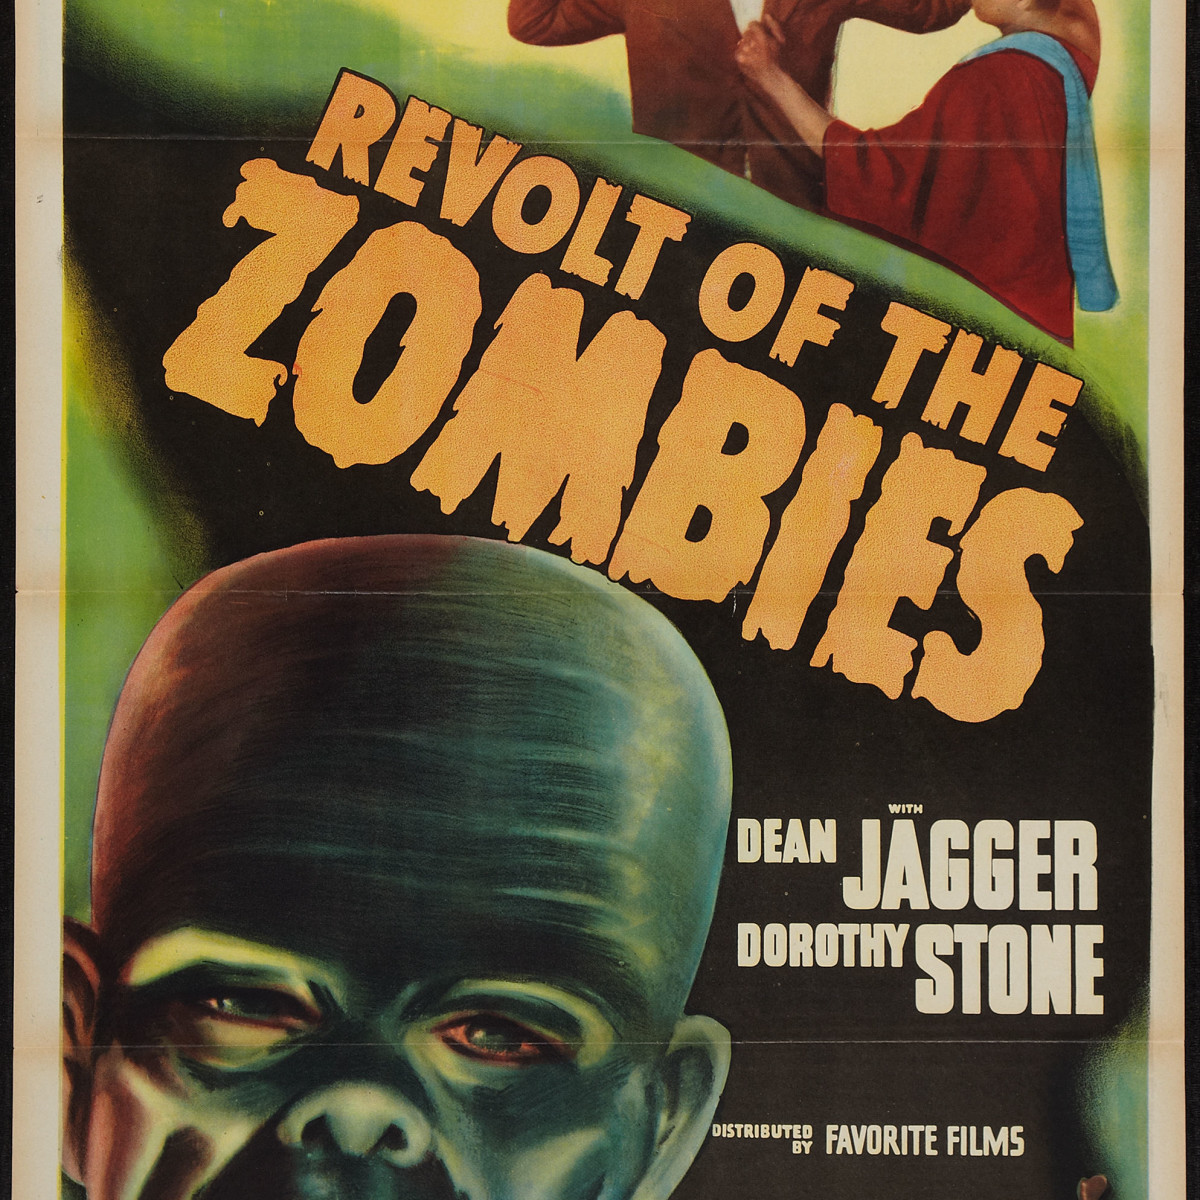 Revolt of the zombies 1936